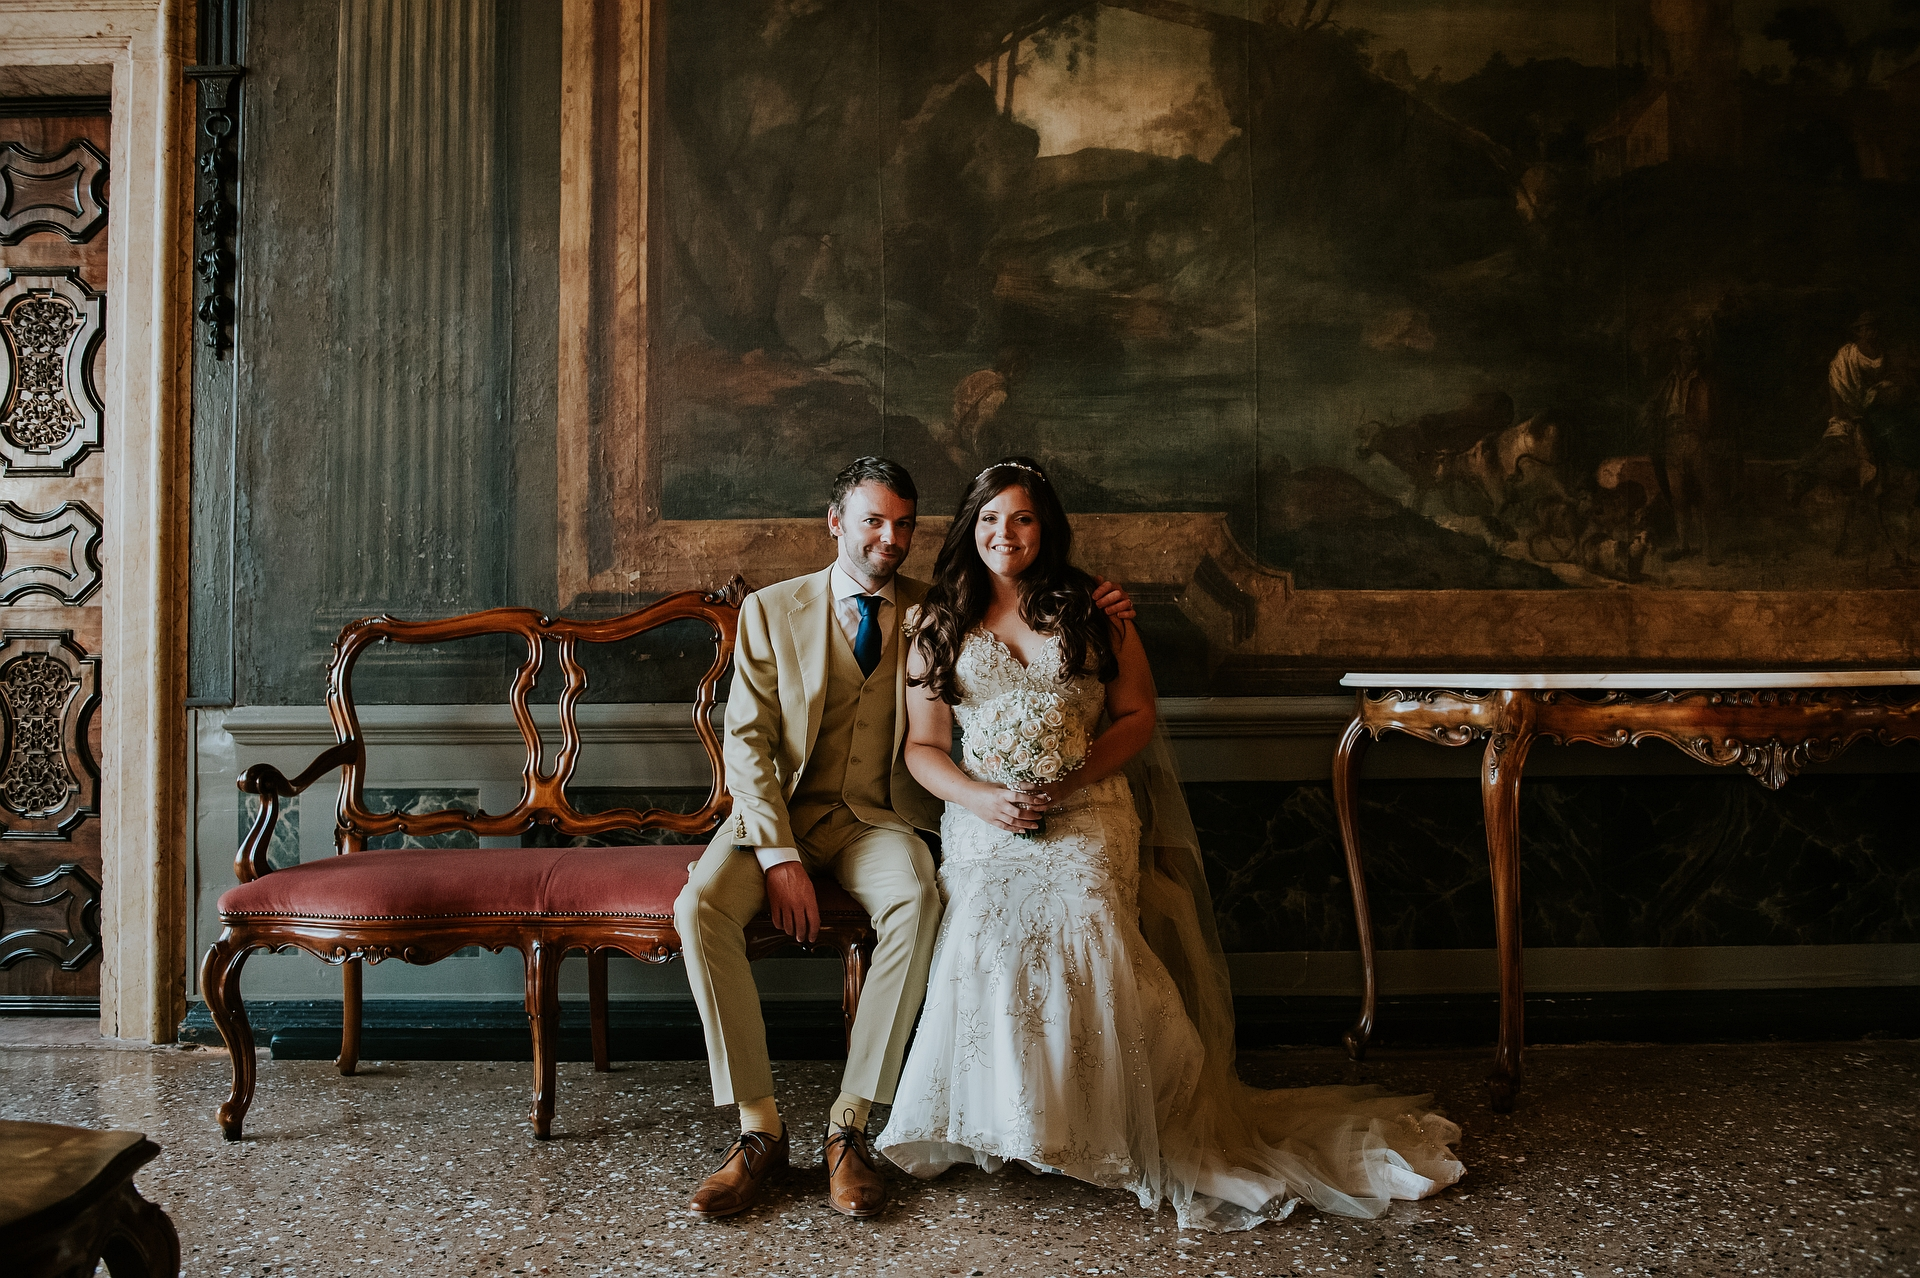 Elopement Photo, Venice Hotel - Ca'Sagredo Near Veneto | A portrait of the couple